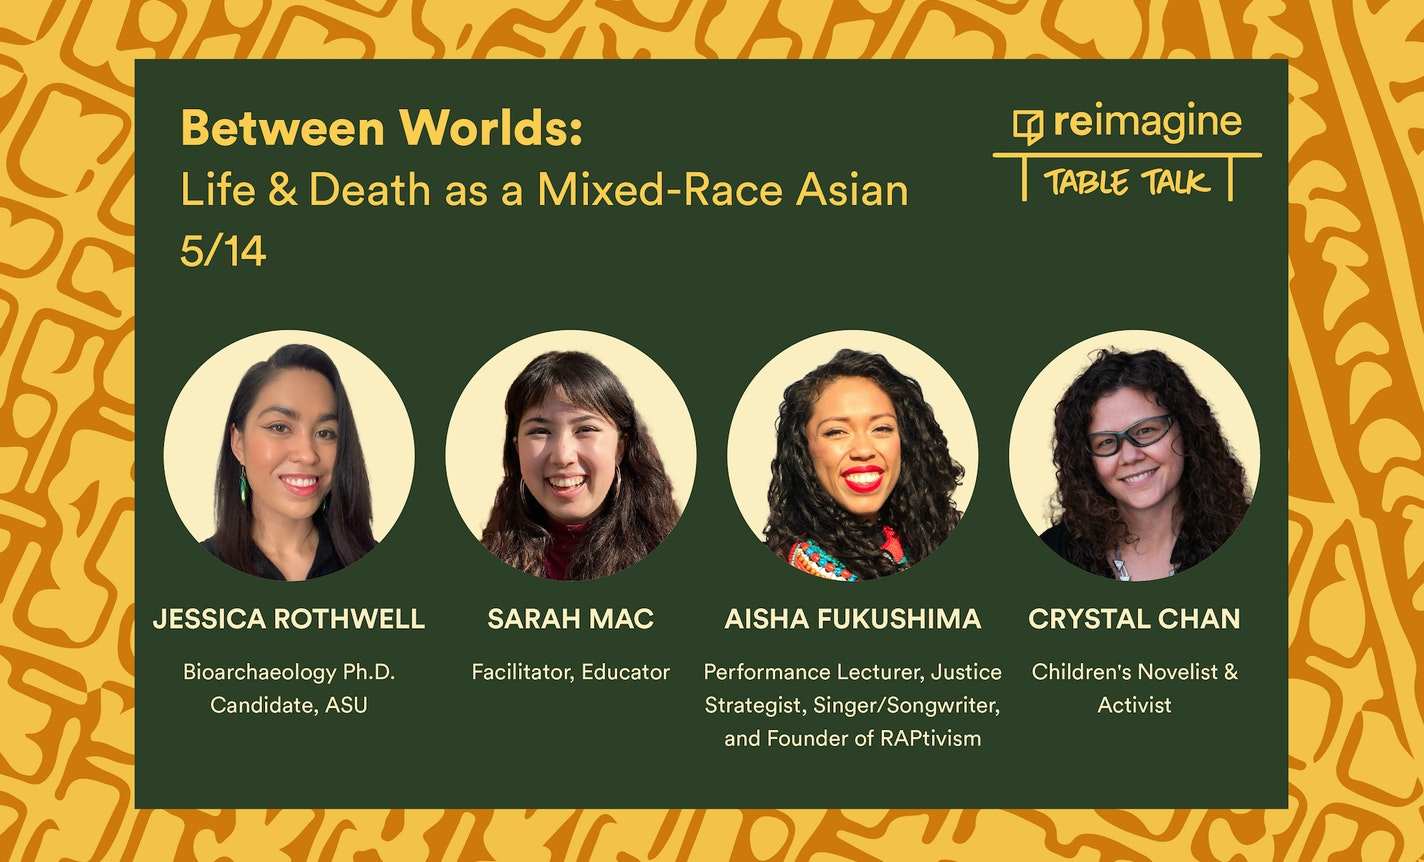 Table Talk | Between Worlds: Life & Death as a Mixed-Race Asian